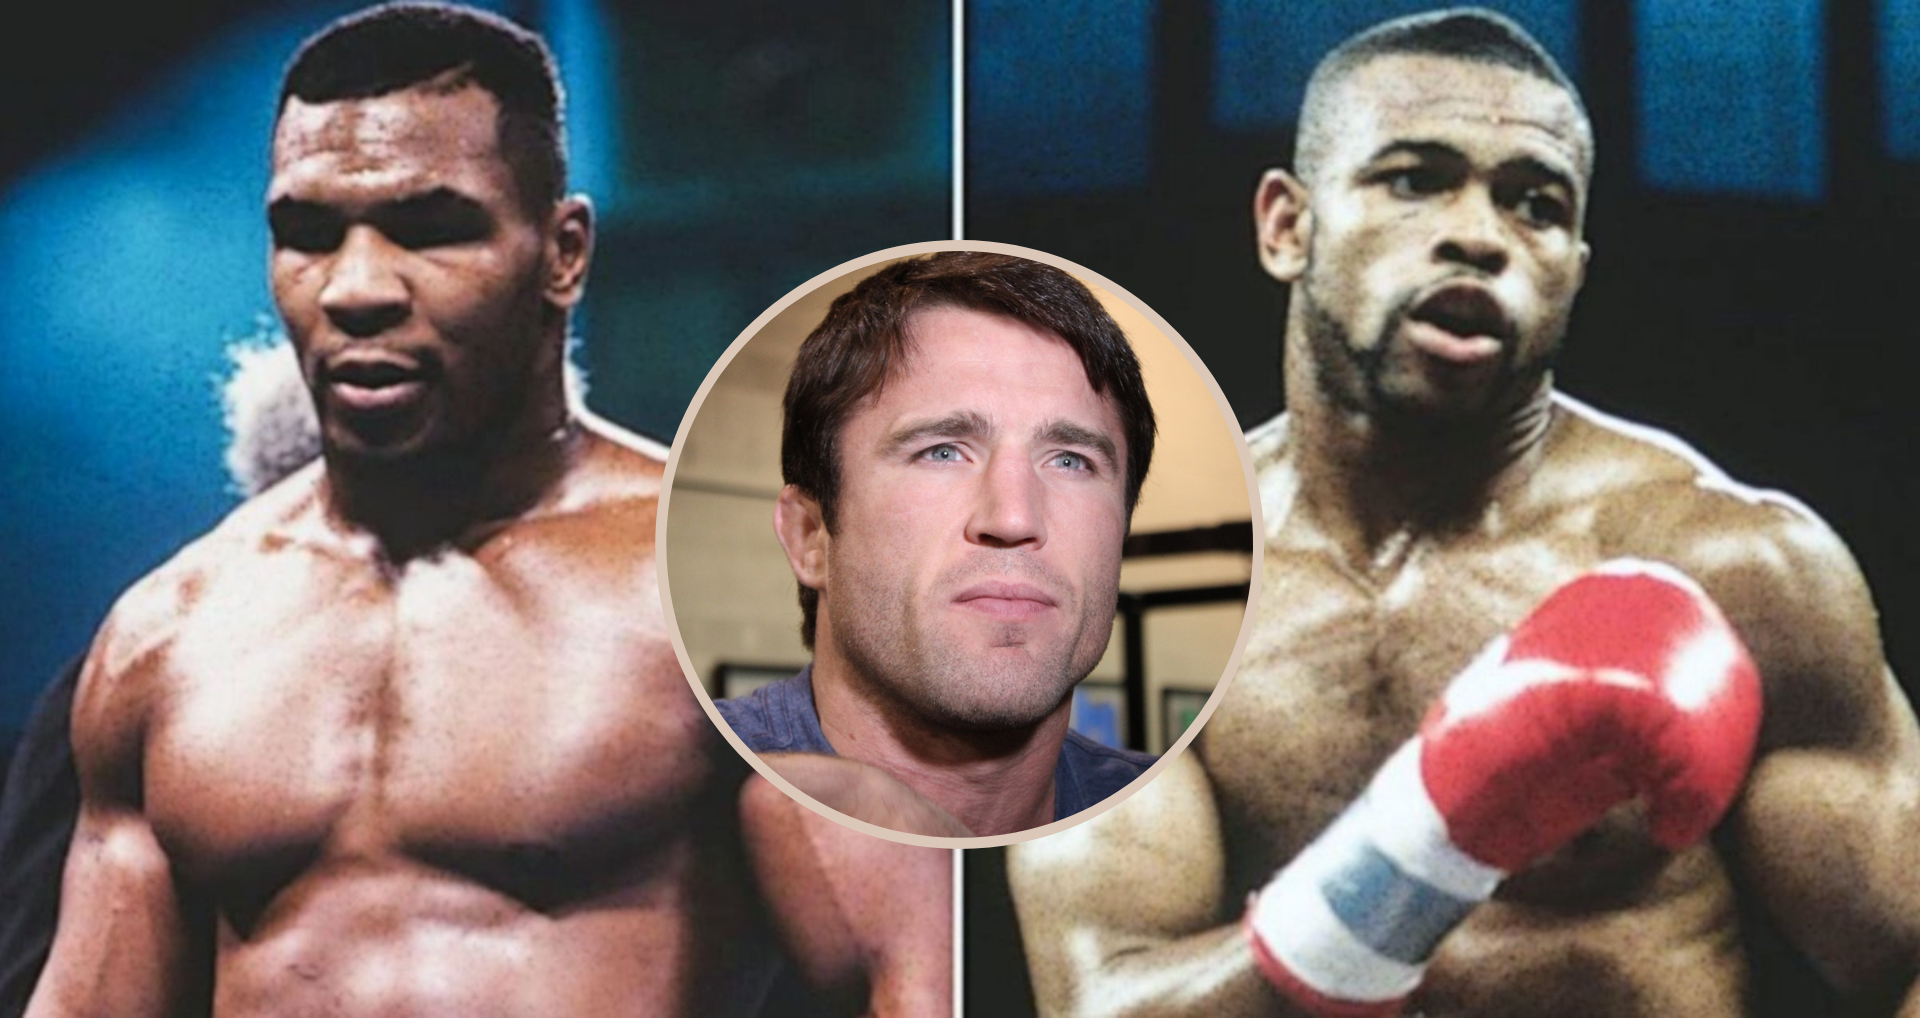 Chael Sonnen believes Mike Tyson will be using PEDs in Roy Jones Jr. fight - Sonnen